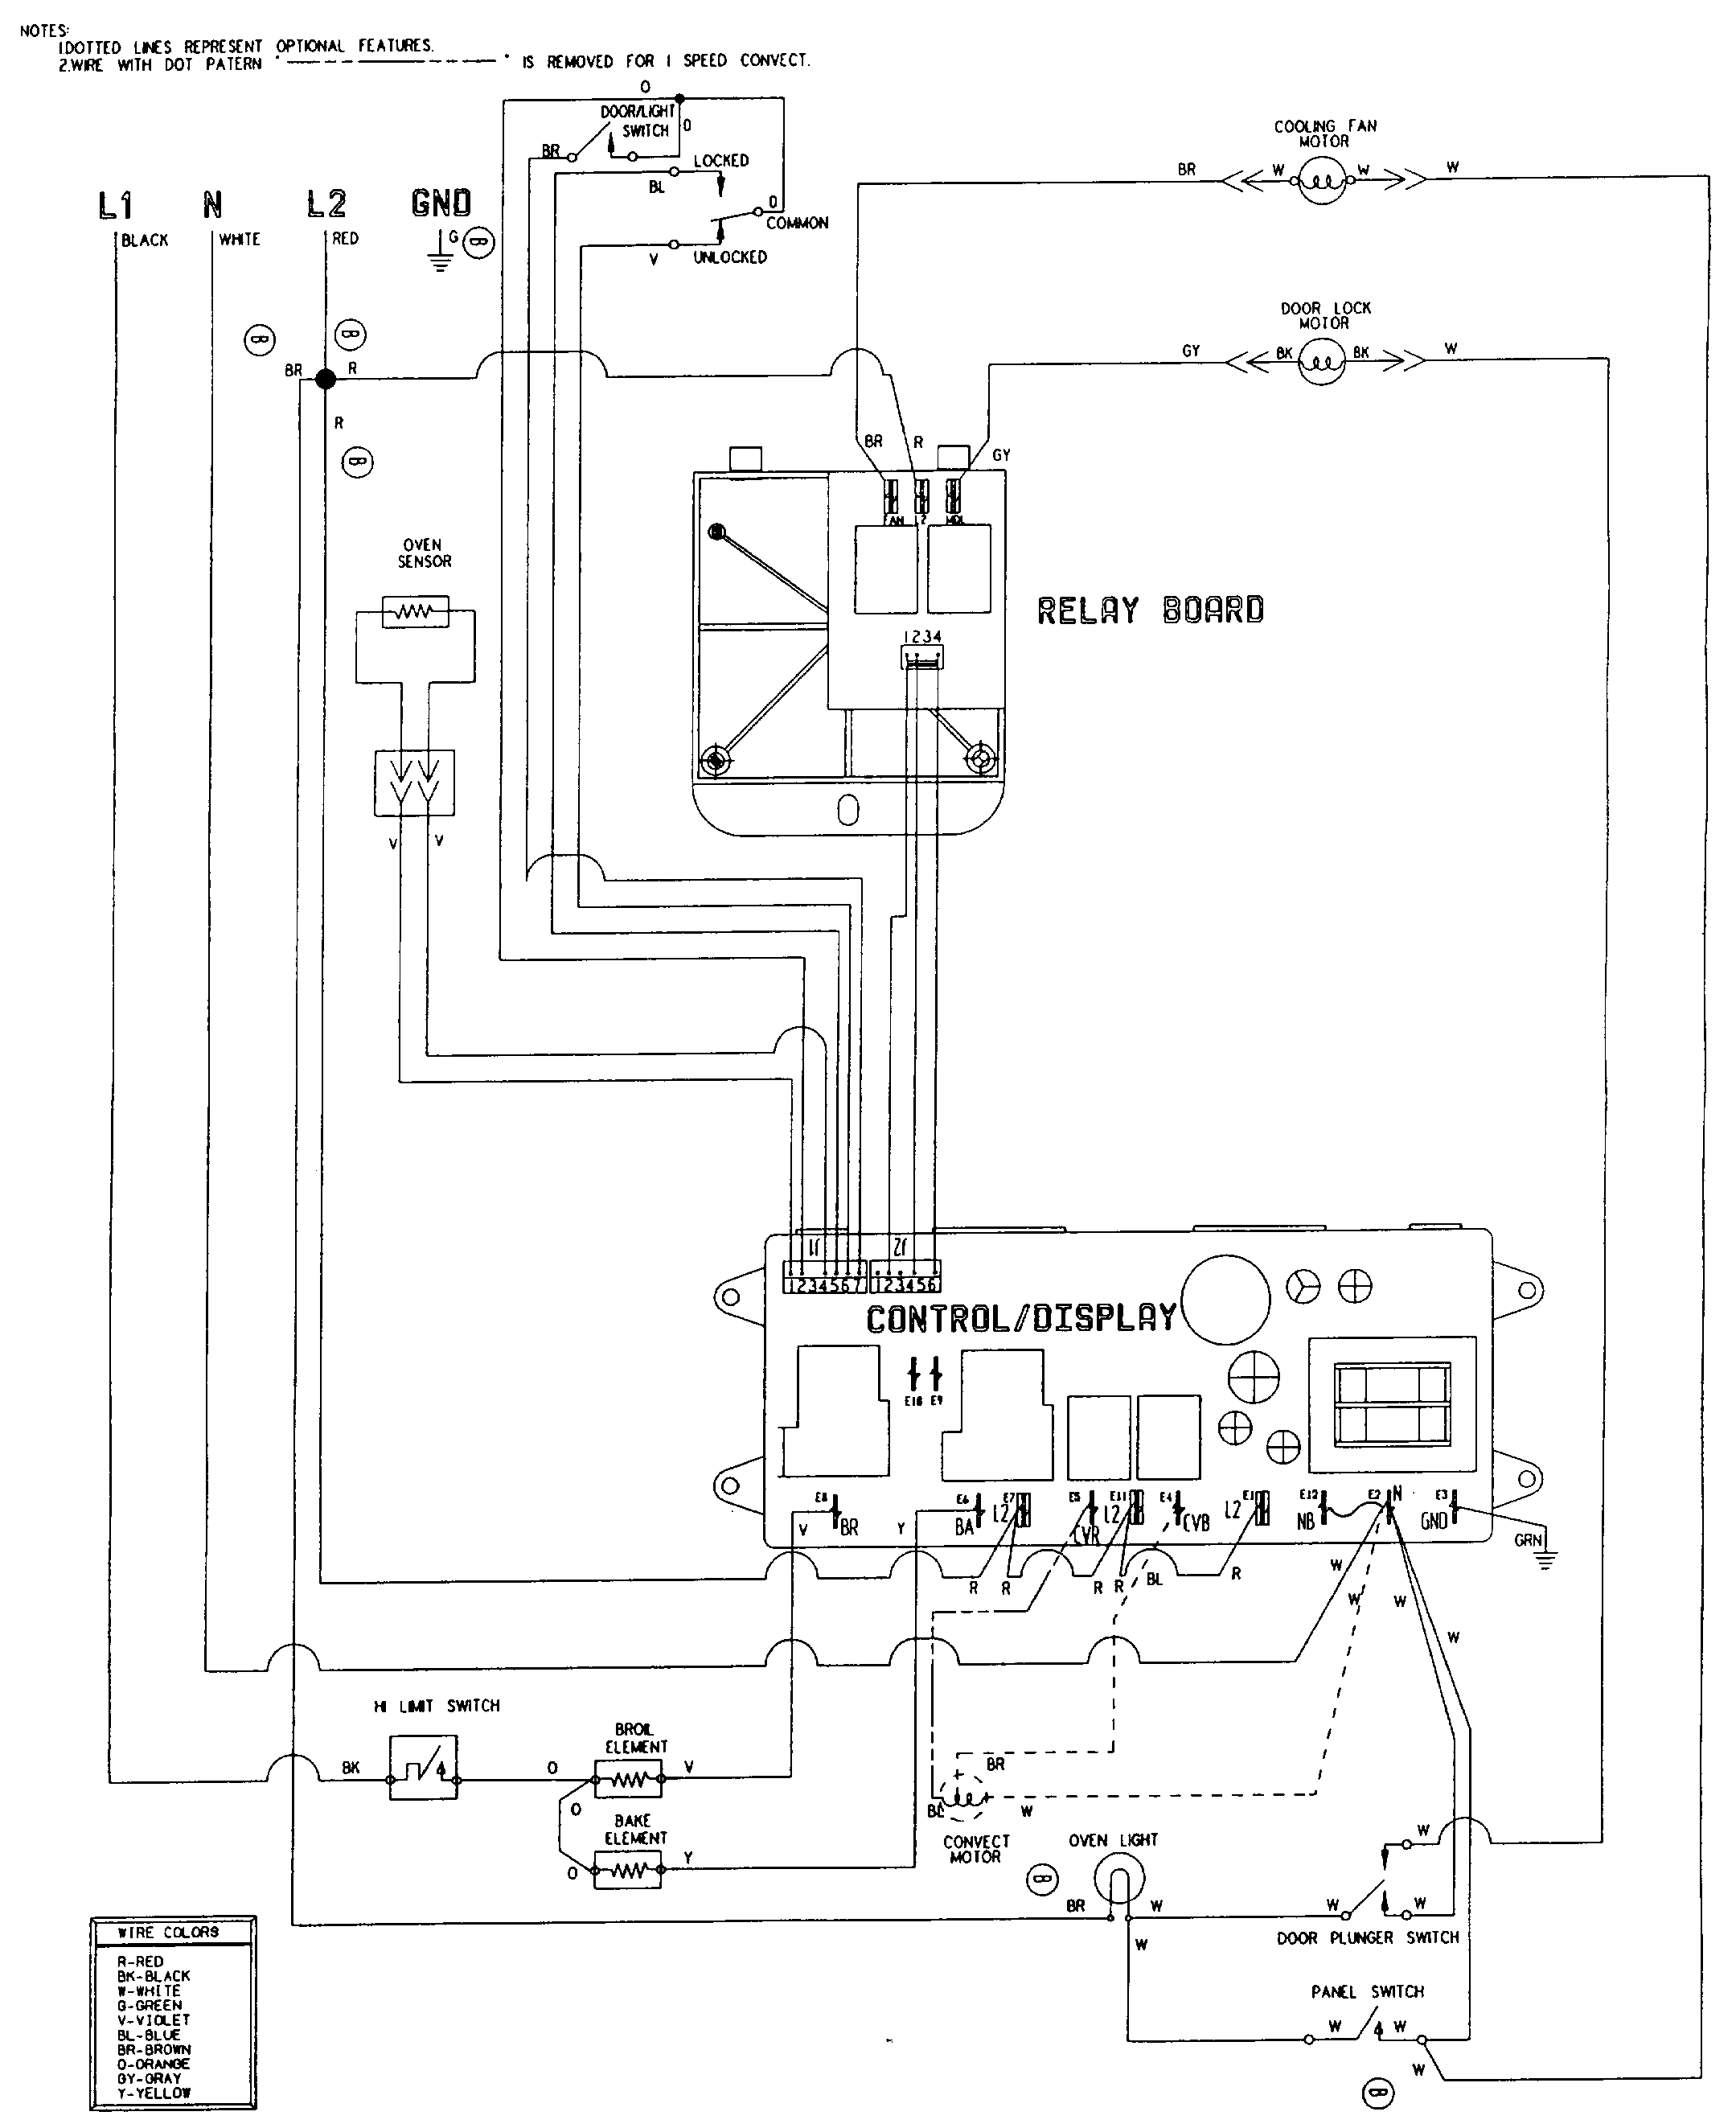 new gfci wiring diagram for hot tub diagram diagramsample diagramtemplate wiringdiagram diagramchart worksheet worksheettemplate diagram chart in  [ 2159 x 2641 Pixel ]